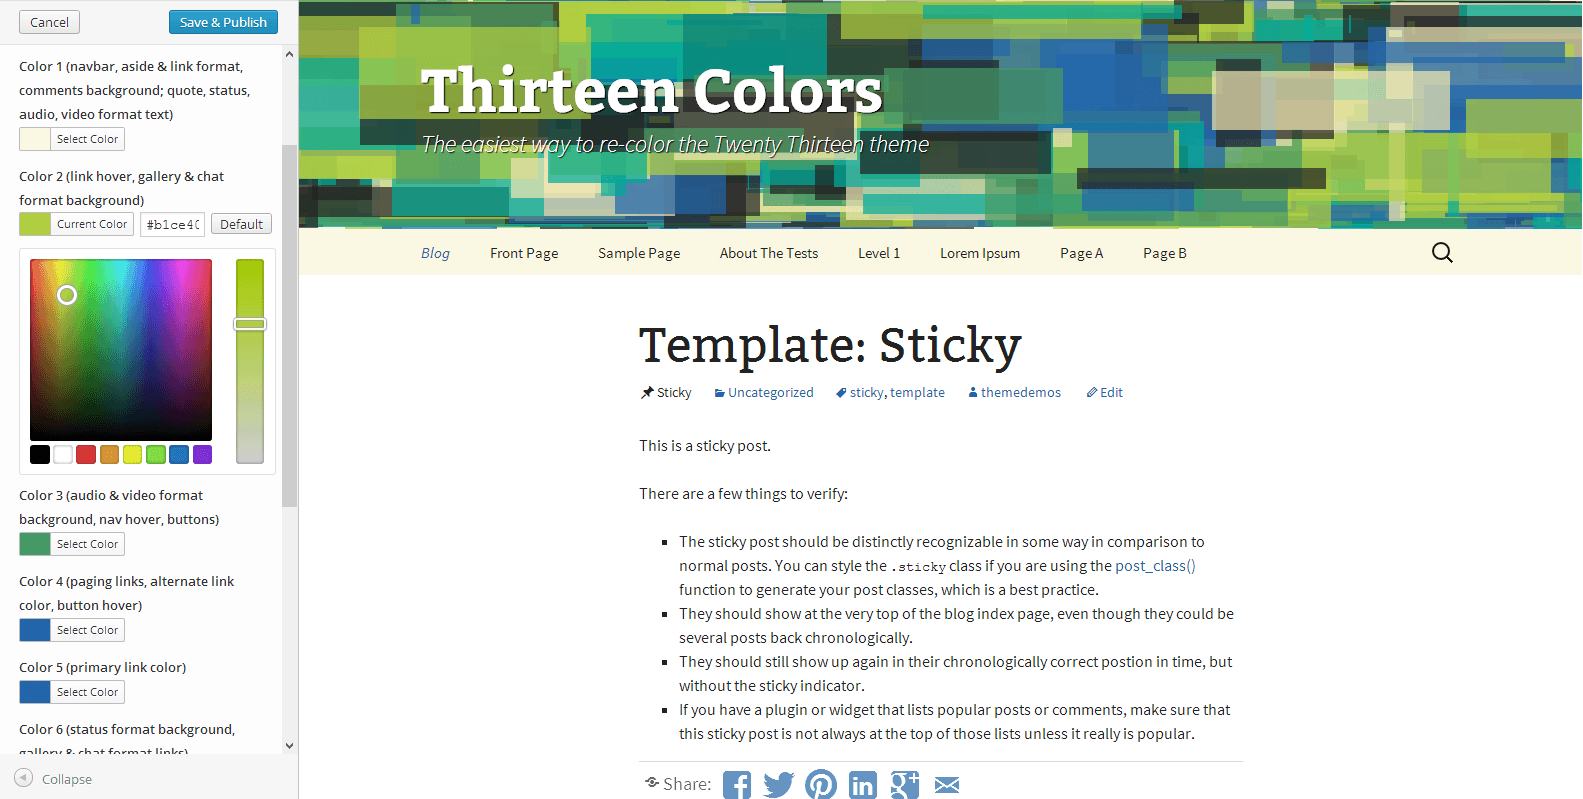 Color customization interface within the theme customizer.